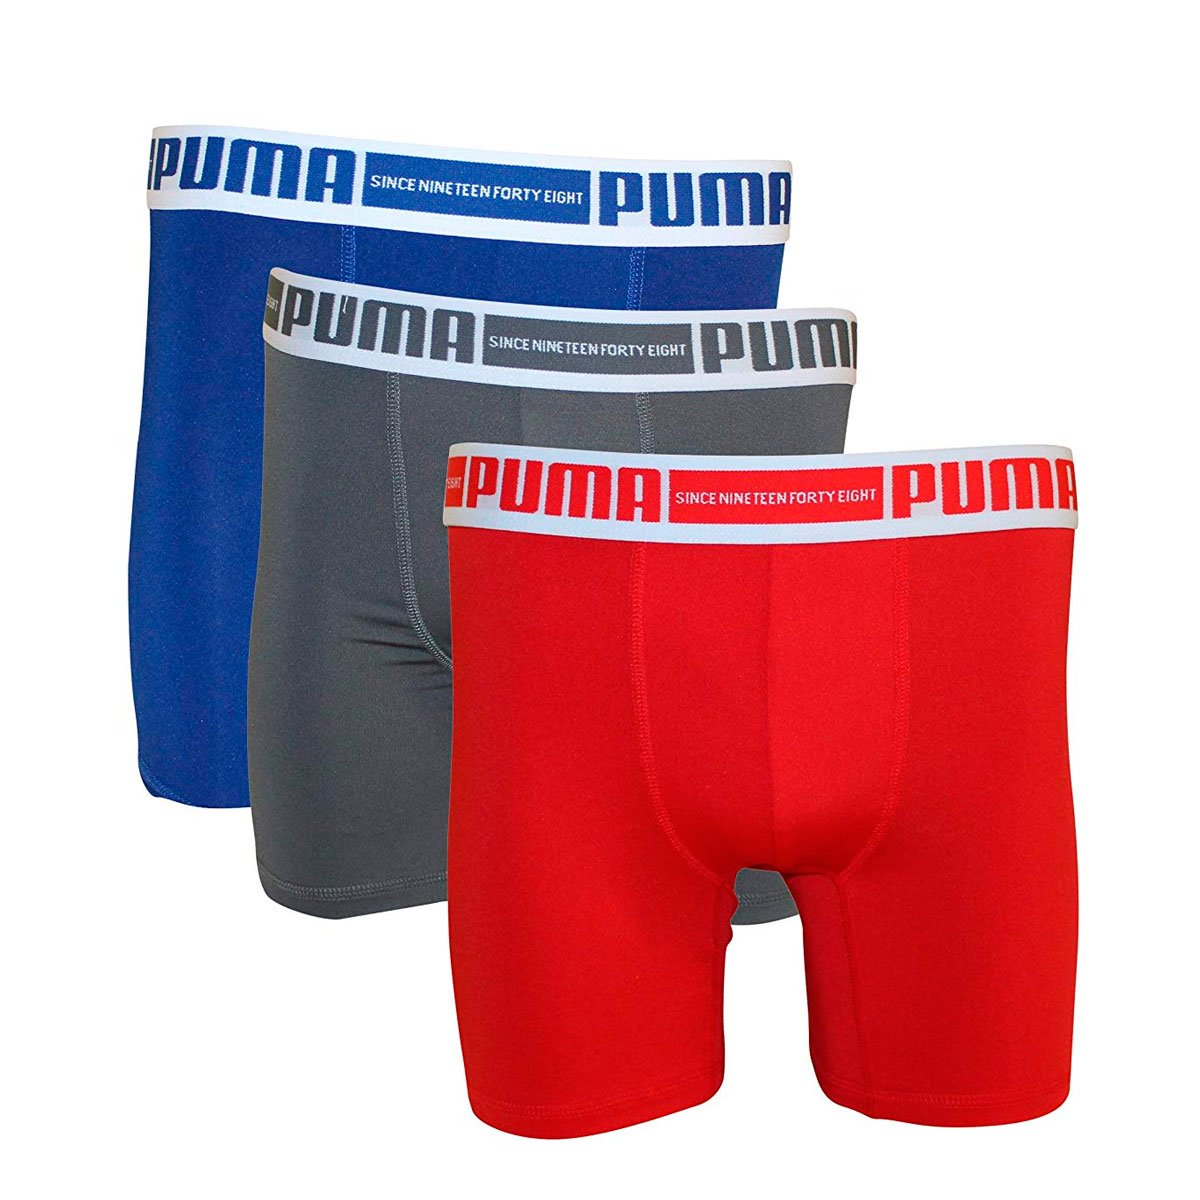 [PMTBB-613] 3Pk Mens Vol Boxer Brief